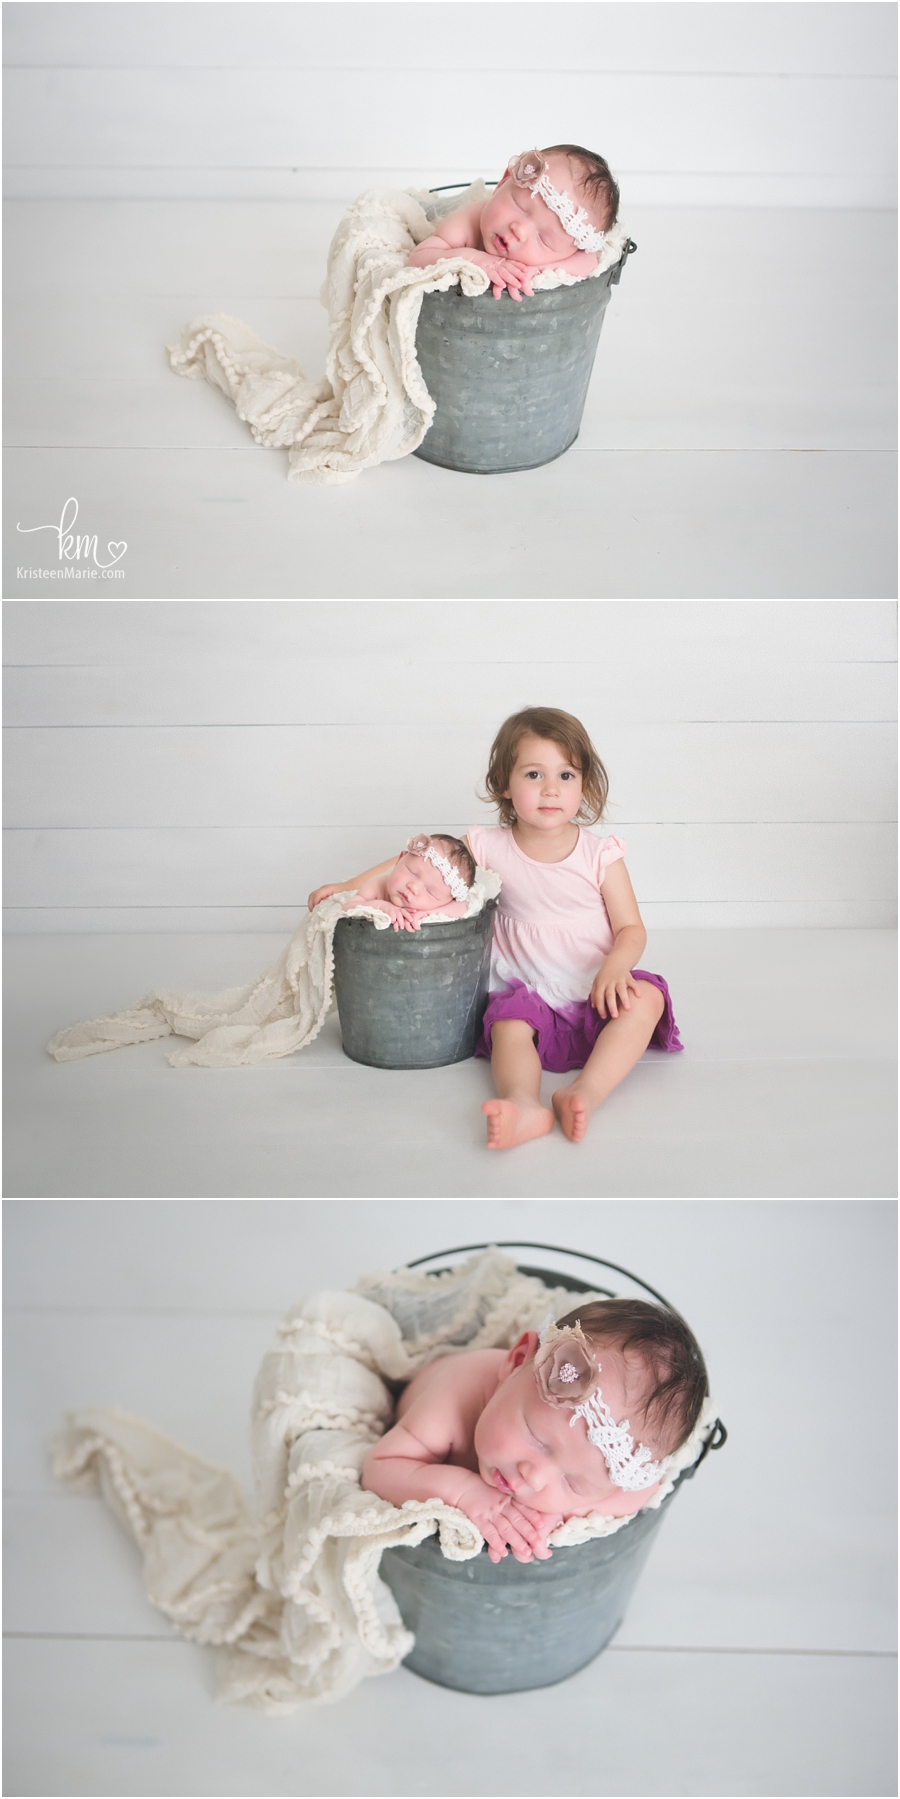 baby in a bucket and newborn baby with sister